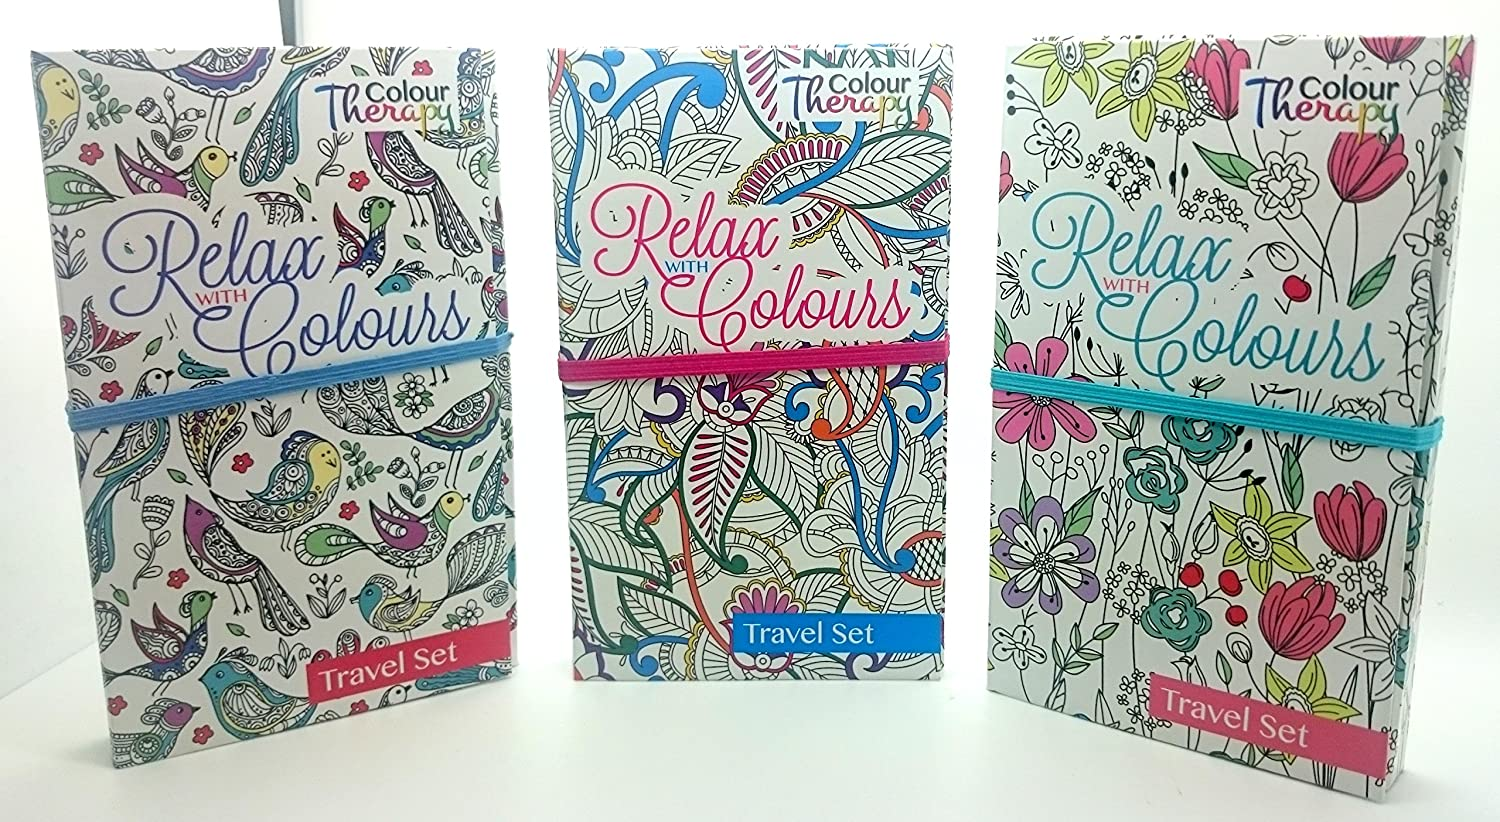 the coloring therapy relax with color art ones travel set book 6844 the flower design the coloring therapy amazoncouk kitchen home - Color Therapy Book